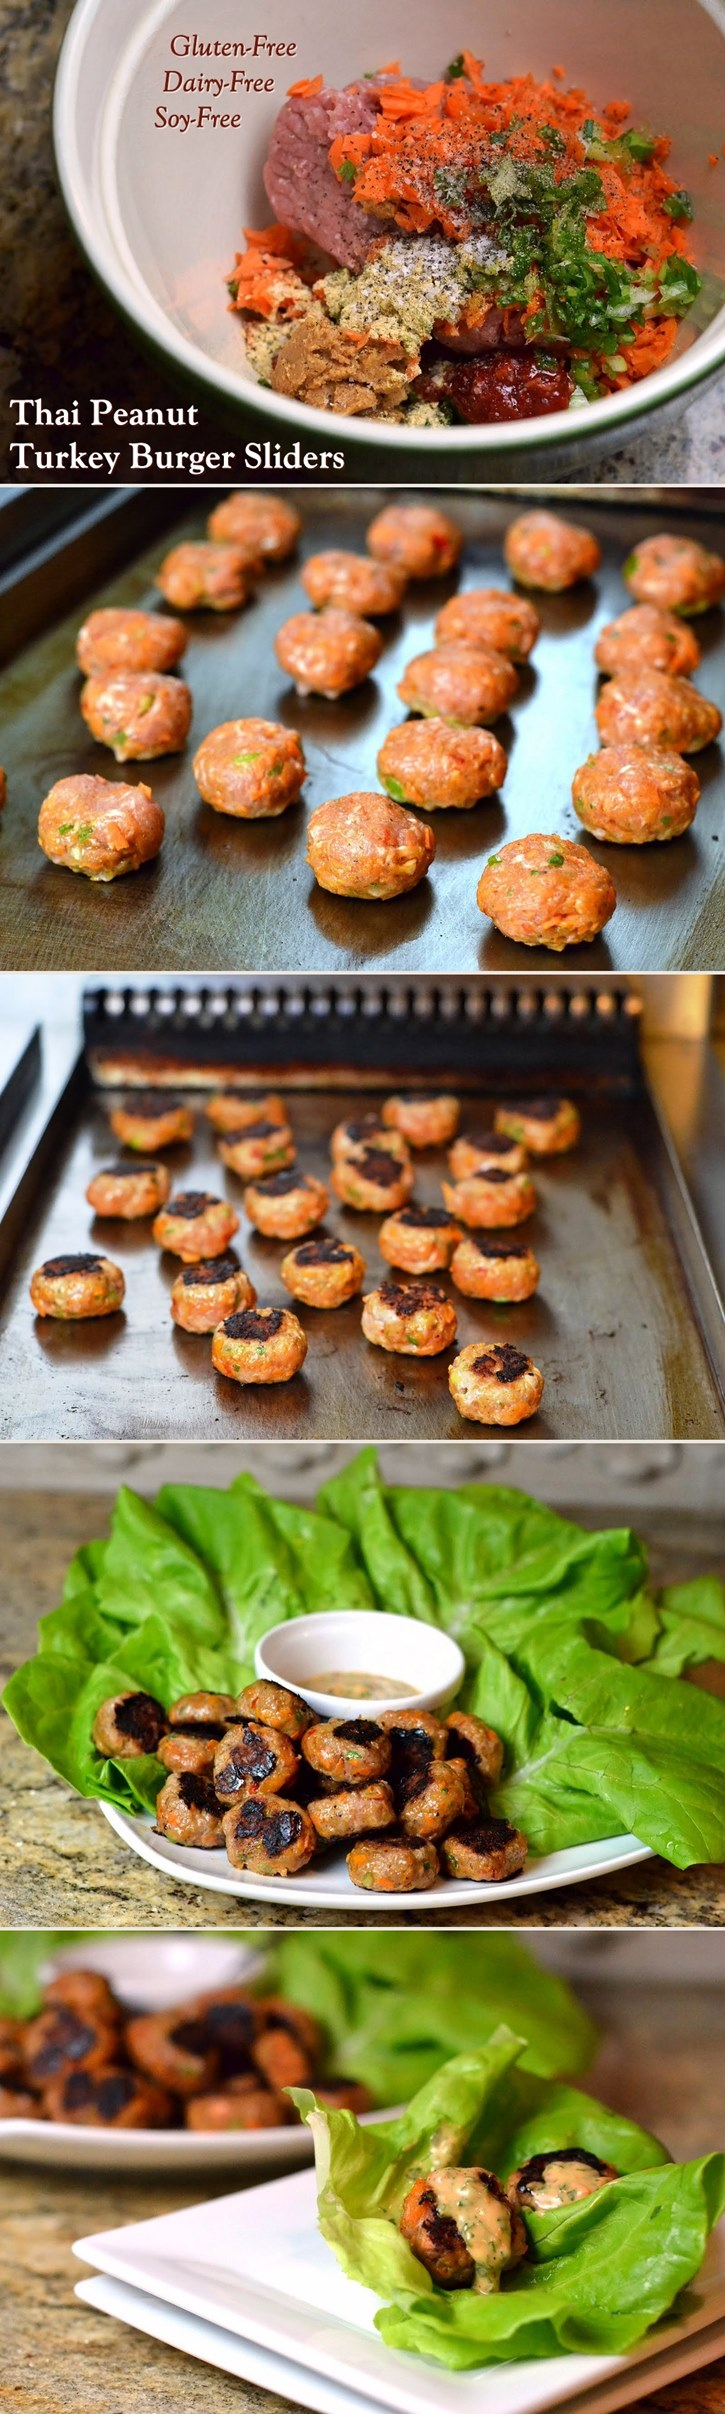 Thai Peanut Turkey Burger Sliders Recipe on Buns or in Lettuce Wraps (dairy-free, gluten-free, soy-free with egg-free and peanut-free options)